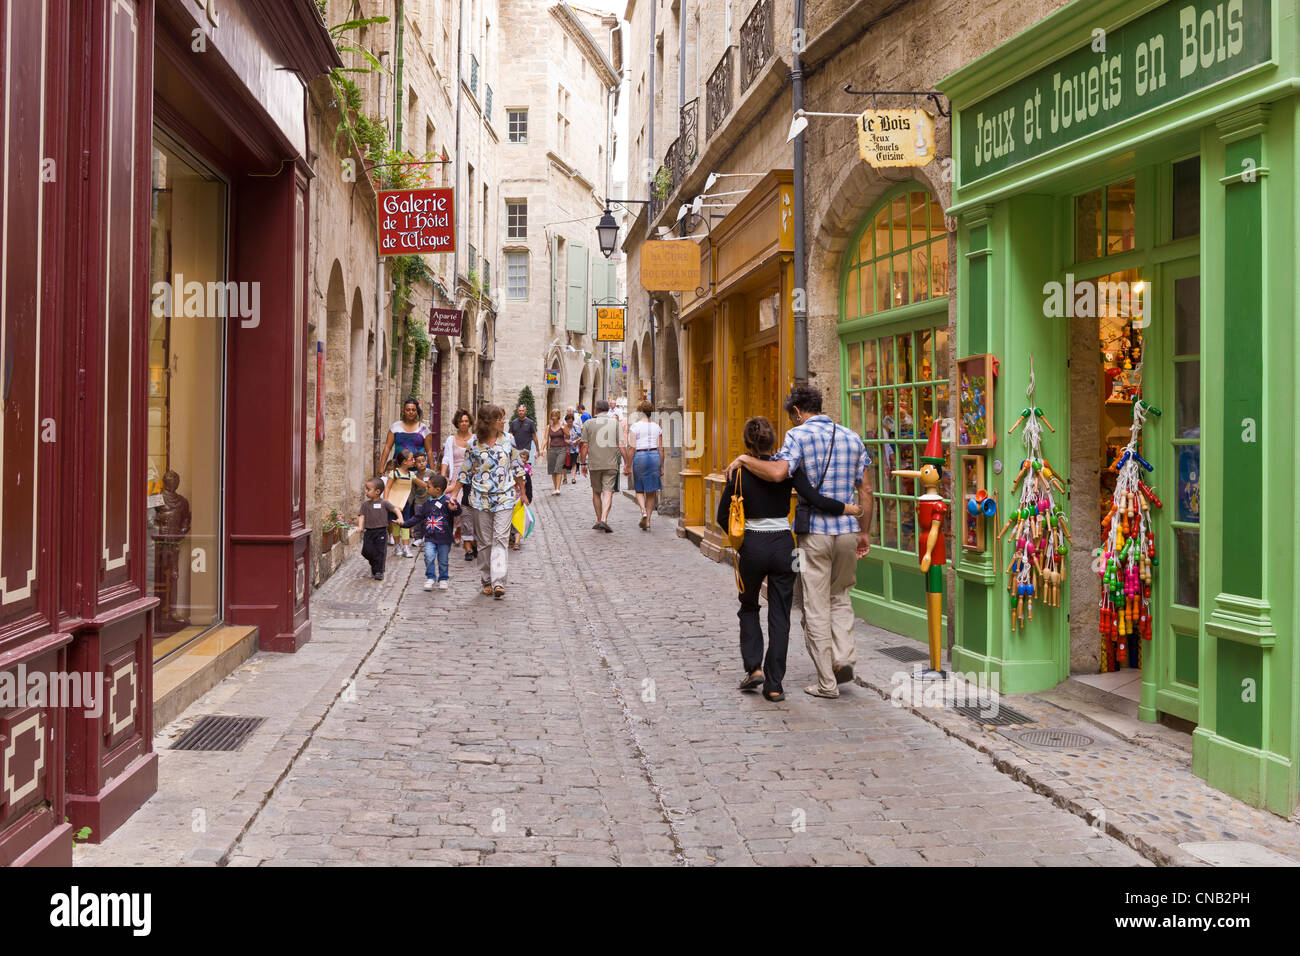 France, Herault, Pezenas, pedestrian alley and his shops - Stock Image